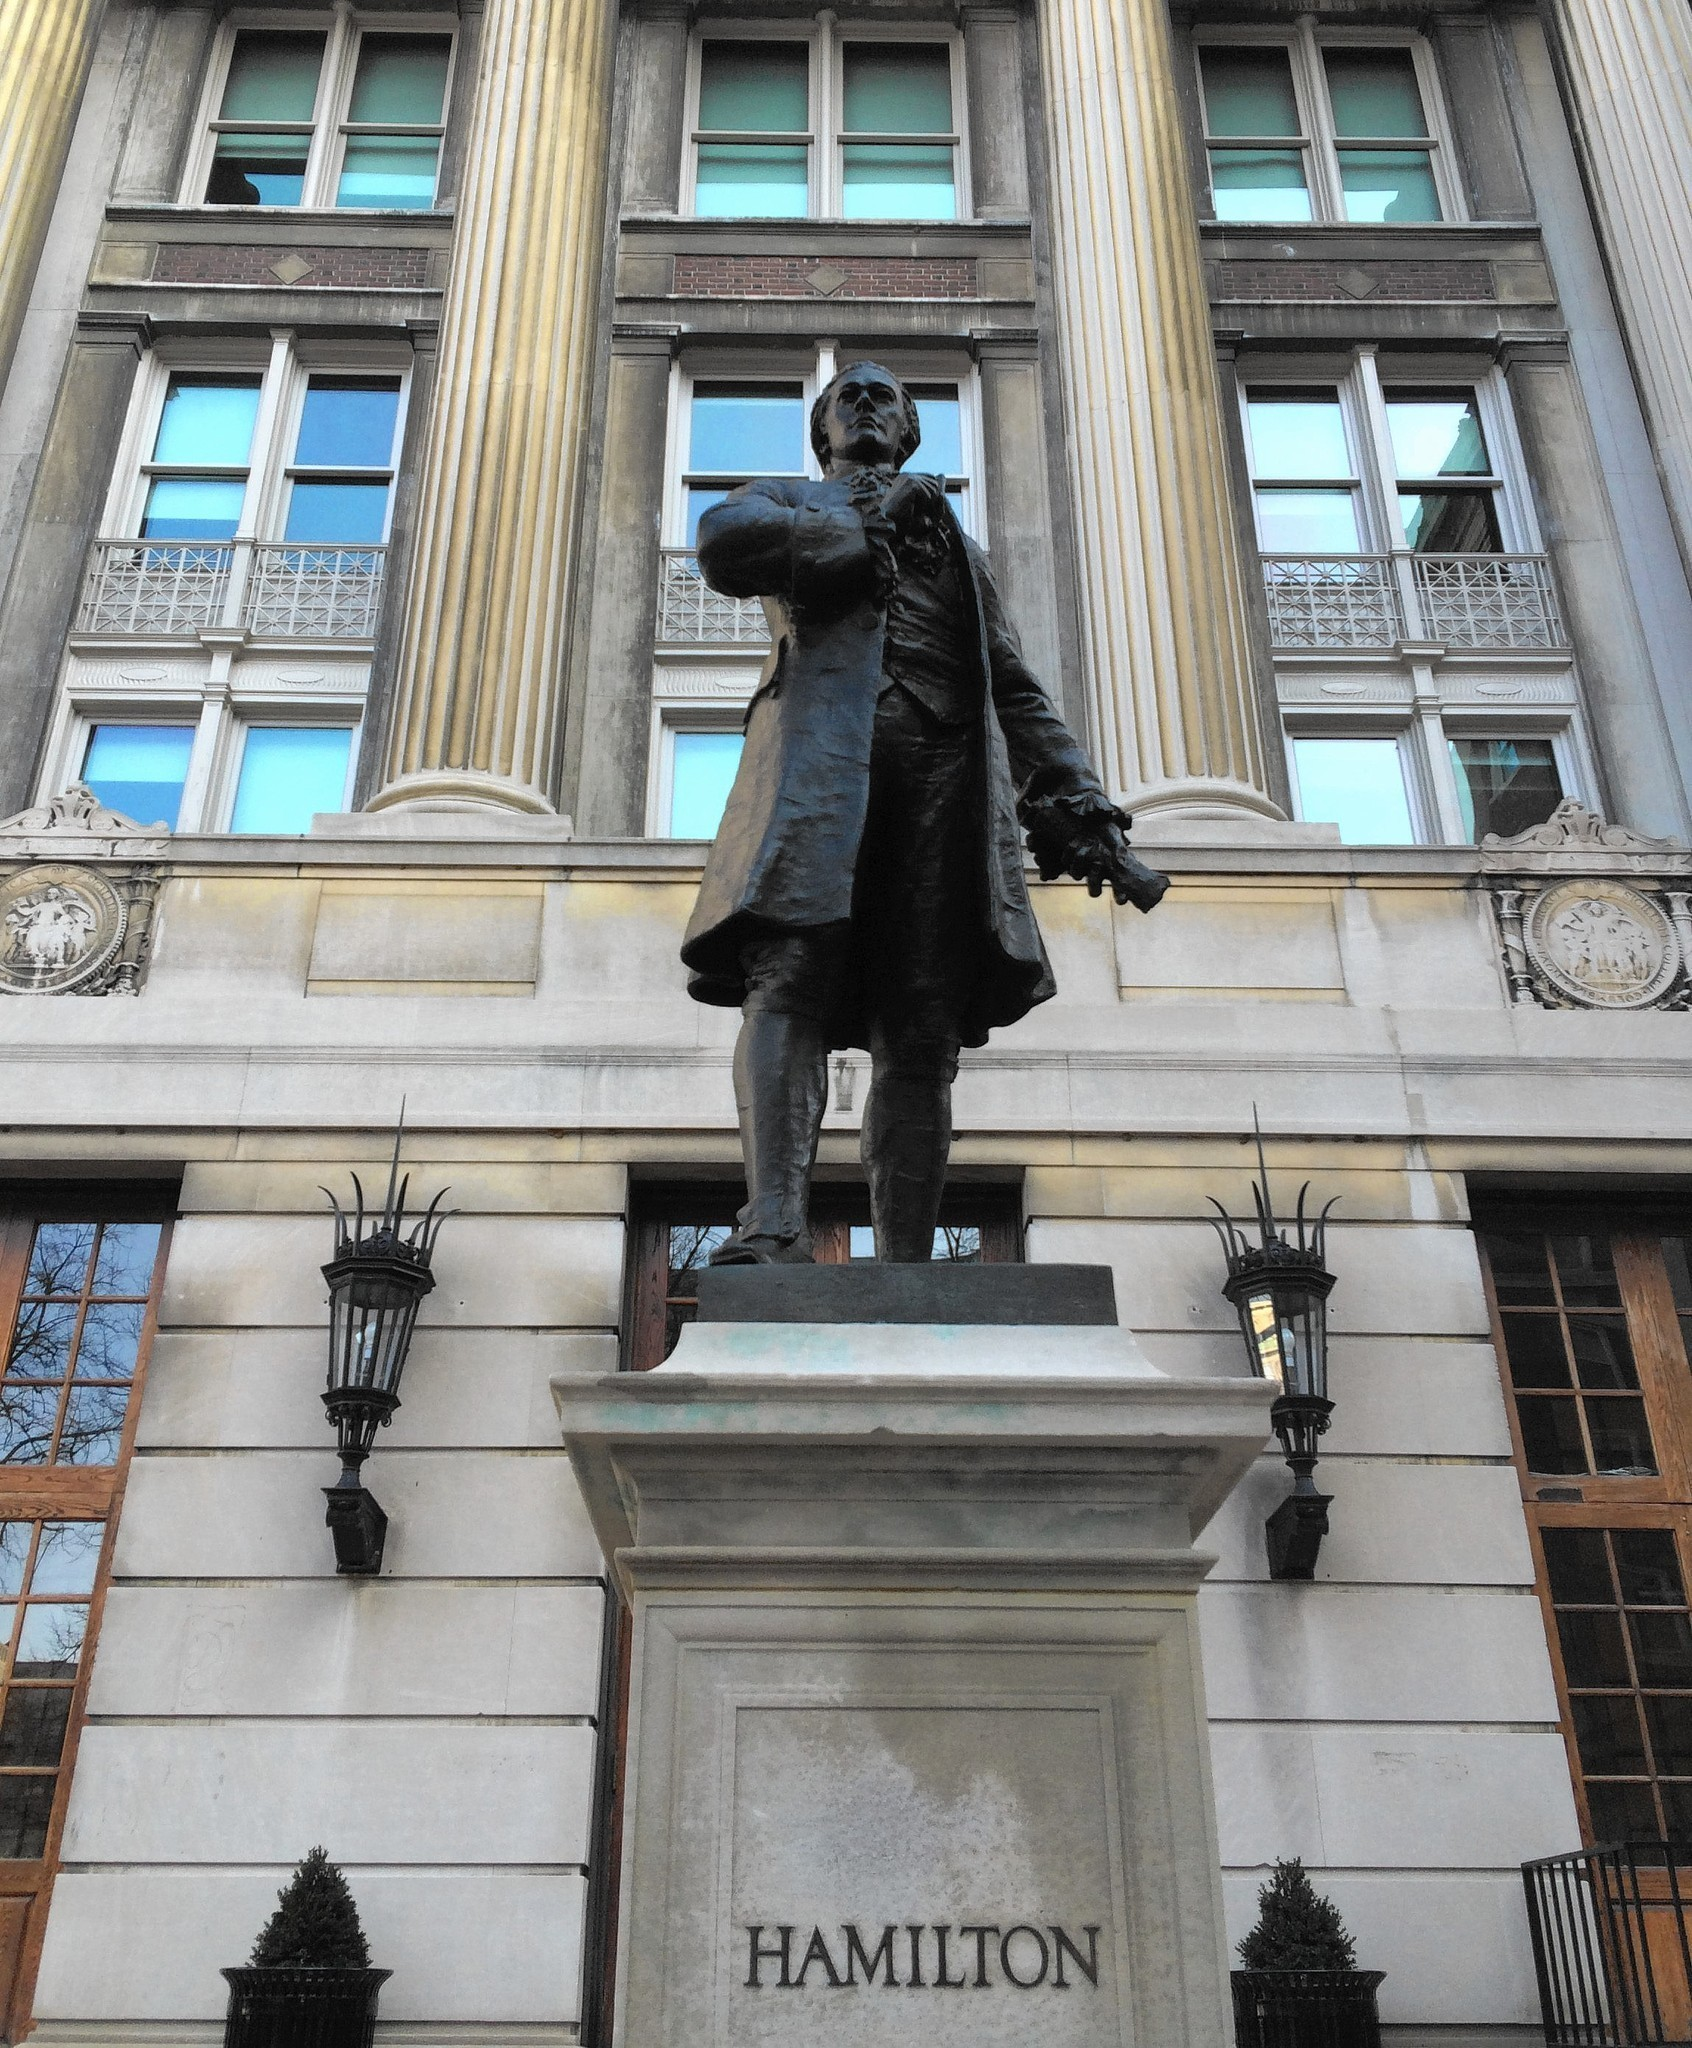 NY, NJ Sites Honoring Founding Father Alexander Hamilton